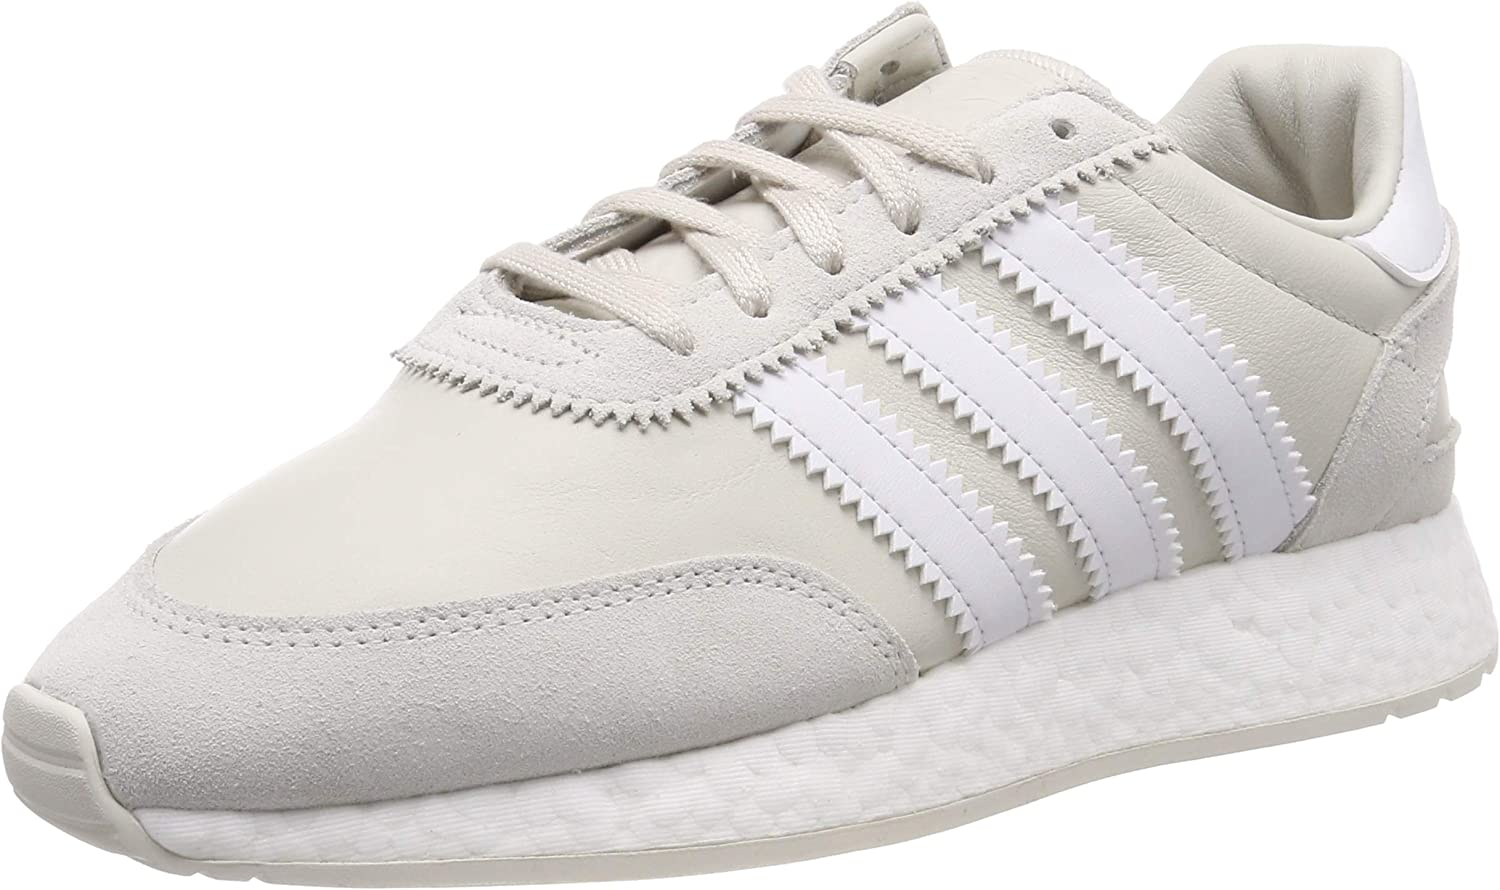 Adidas Mens I-5923 Suede Raw White Crystal White Trainers 11.5 US